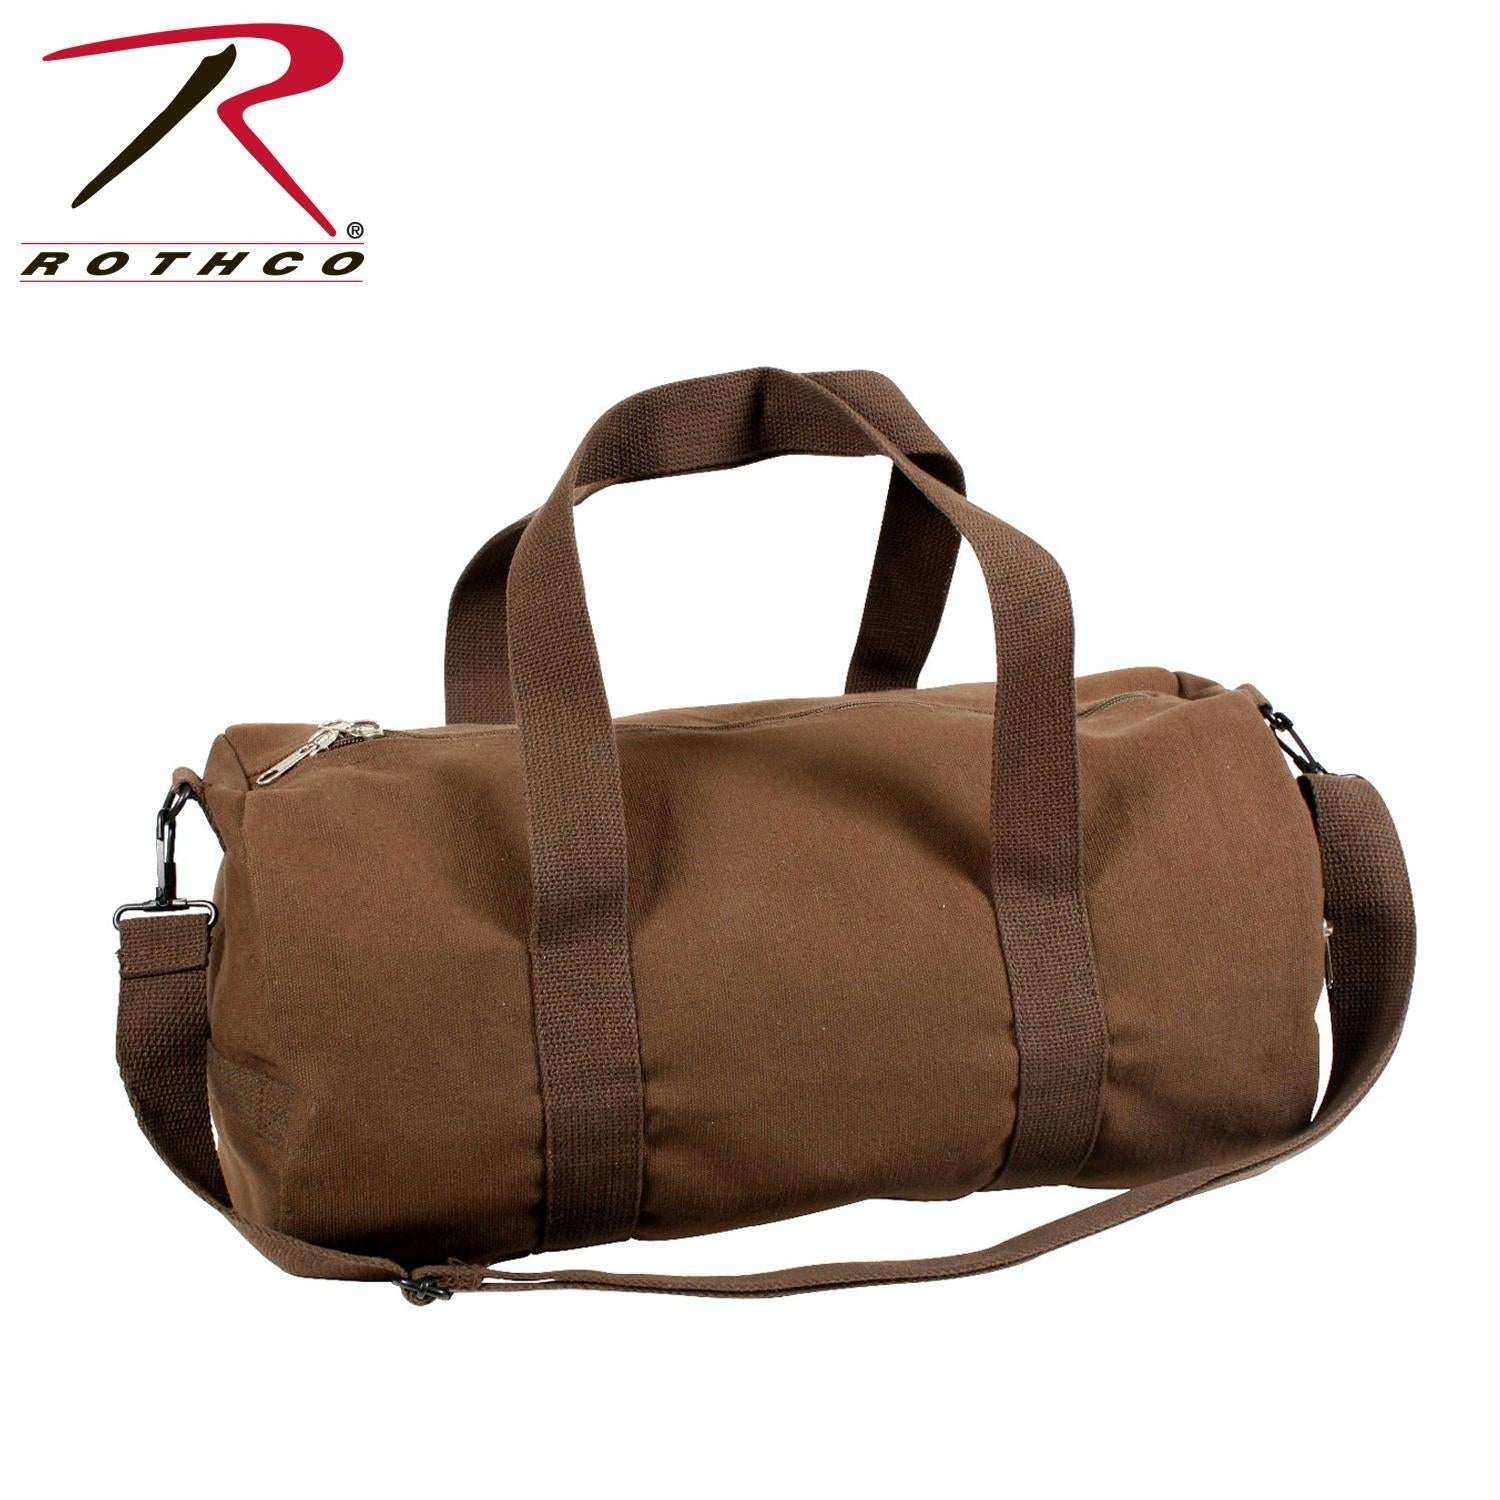 Rothco Canvas Shoulder Duffle Bag - 19 Inch - Earth Brown